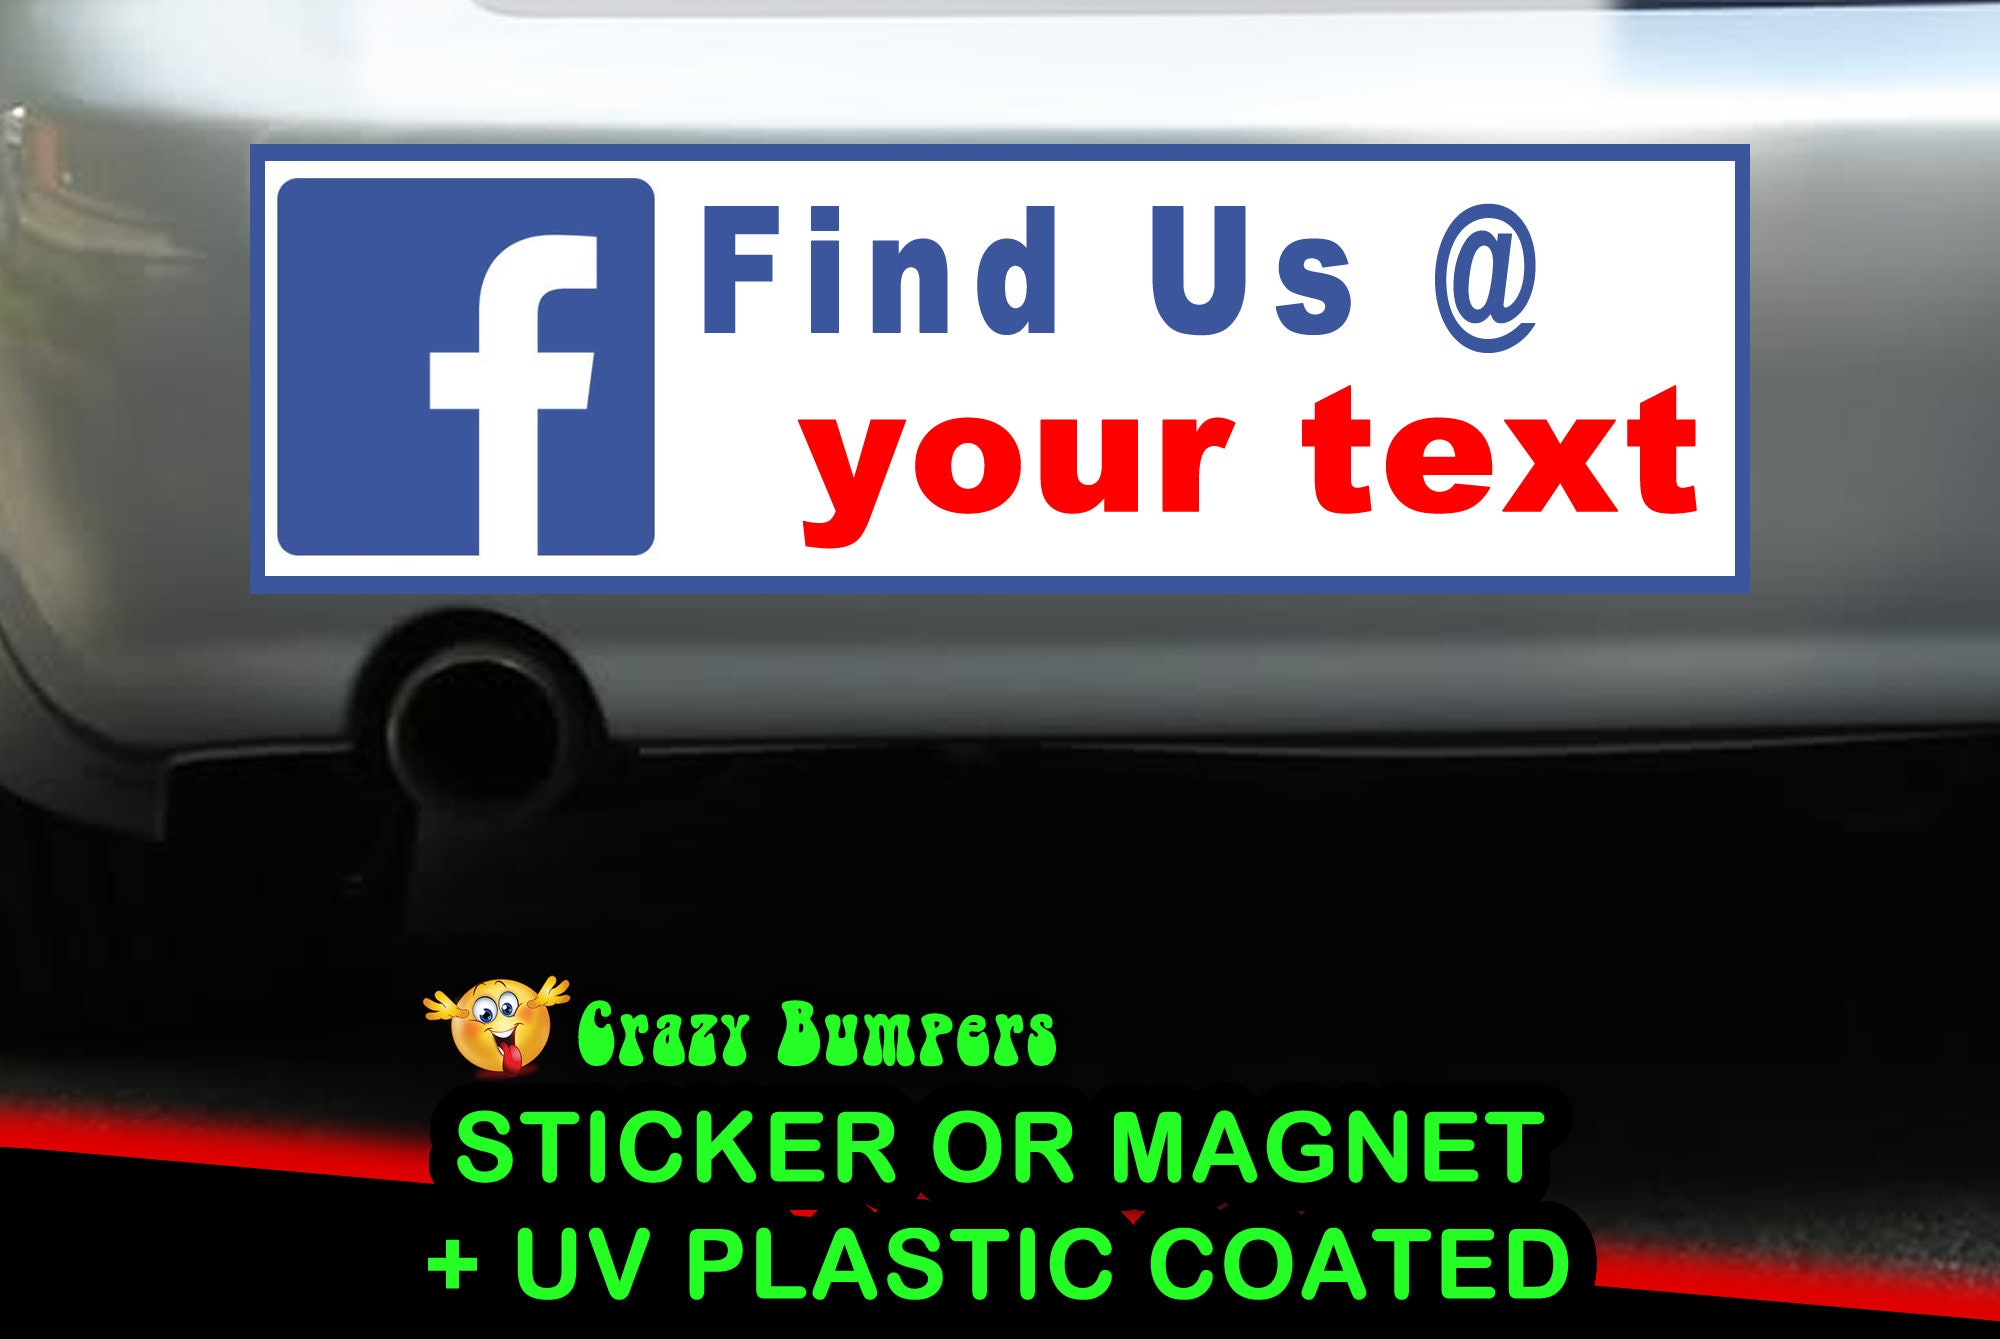 $8.99 - Facebook Your Custom Text Personalized 10x3 or 9x2.7 Bumper Sticker - Custom changes and orders welcomed!